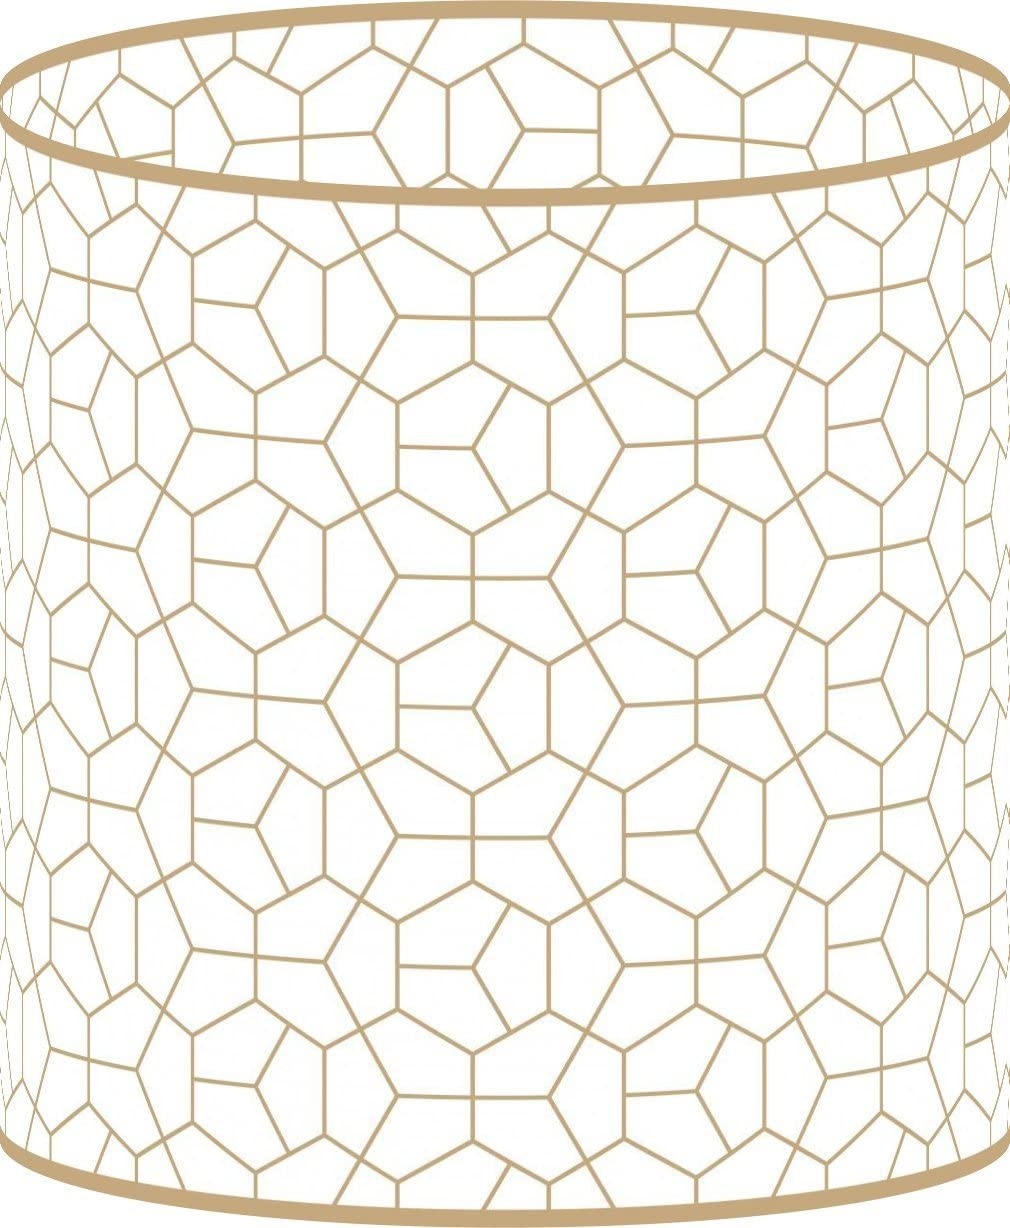 LampPix 10 Inch Table Lamp Shade – Modeco Hex Gold Canvas Desk Lampshade Spider Fitting